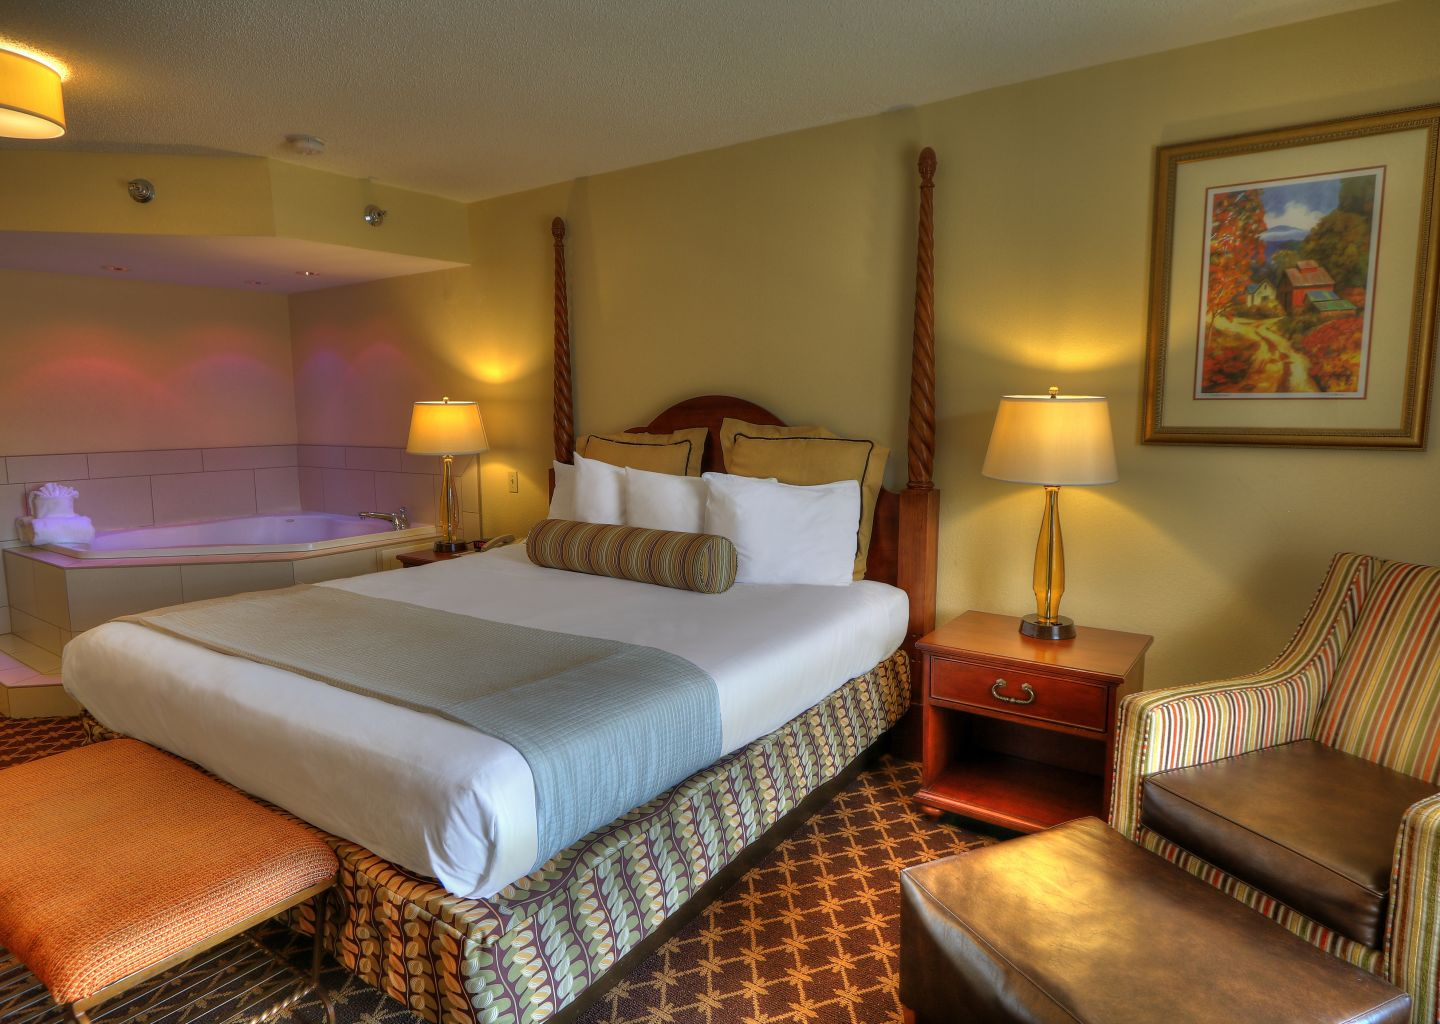 Quality Inn Pigeon Forge - Deluxe King Room